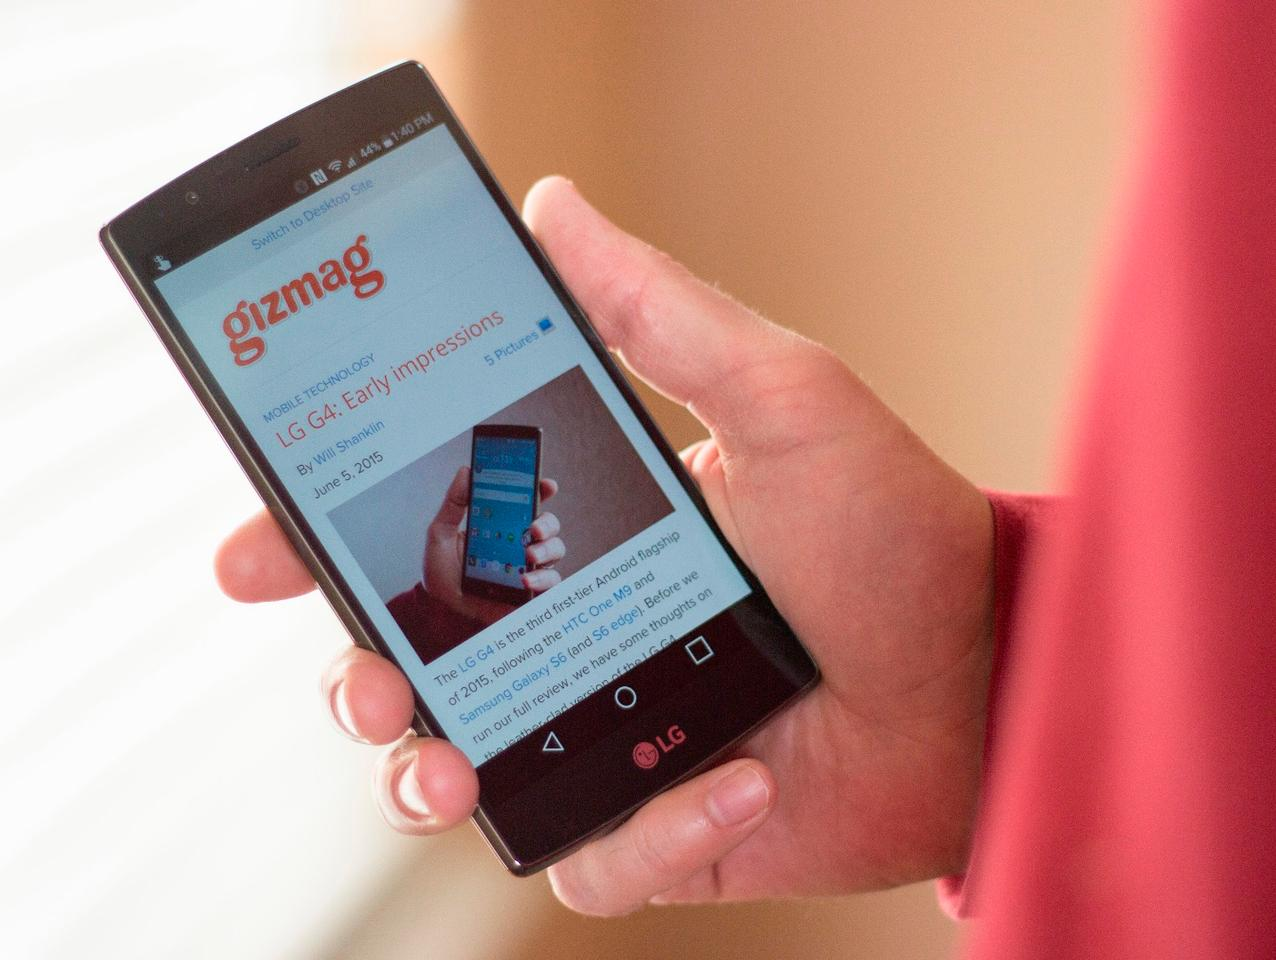 The LG G4 has a terrific display – 5.5-inches, Quad HD resolution with terrific contrast and color saturation